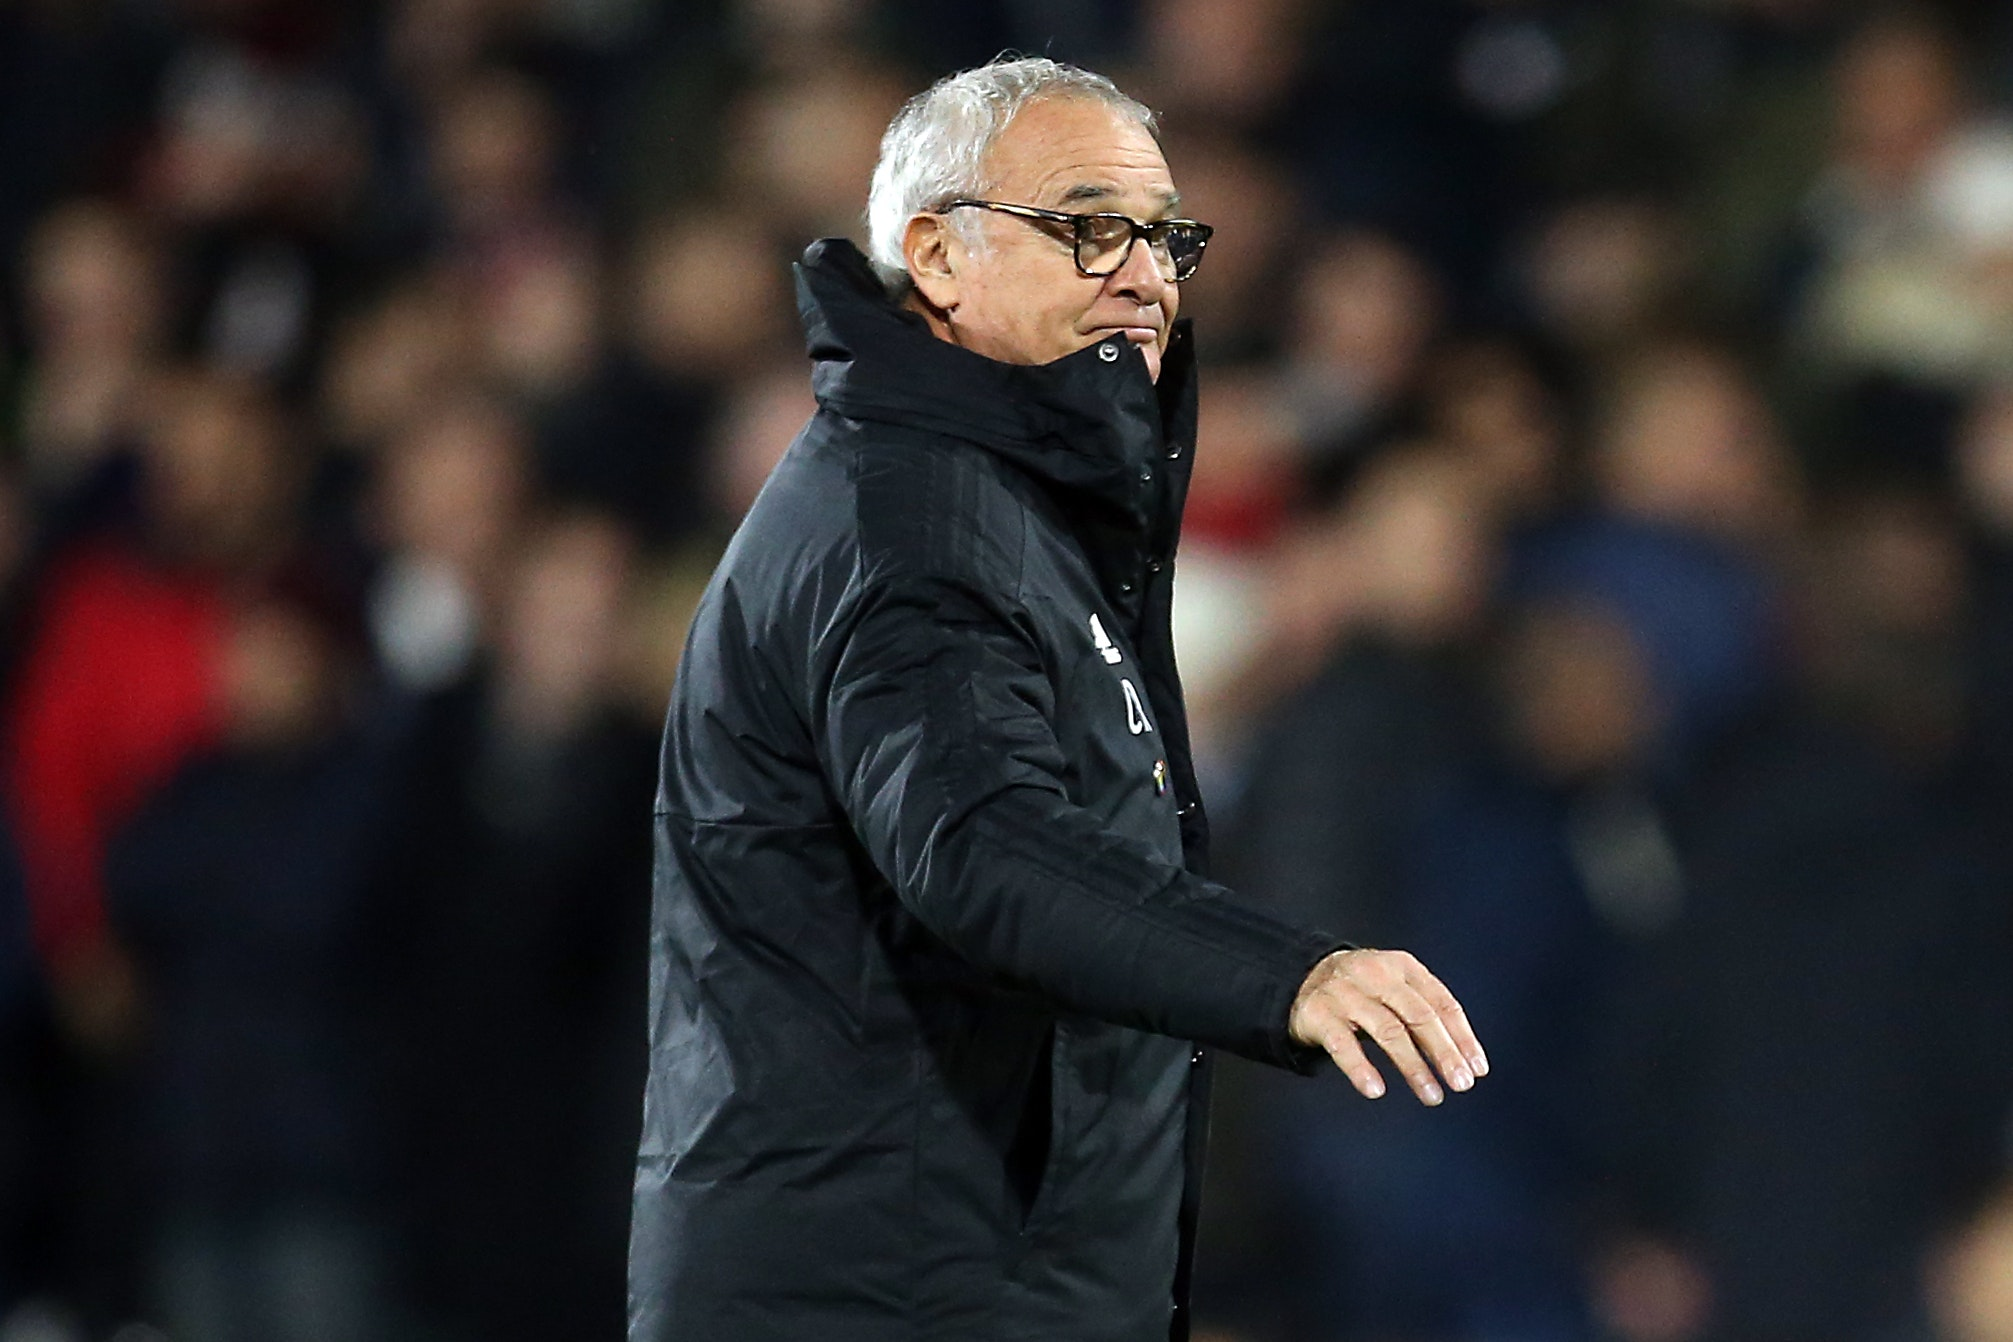 Claudio Ranieri saw Fulham held at home to former club Leicester